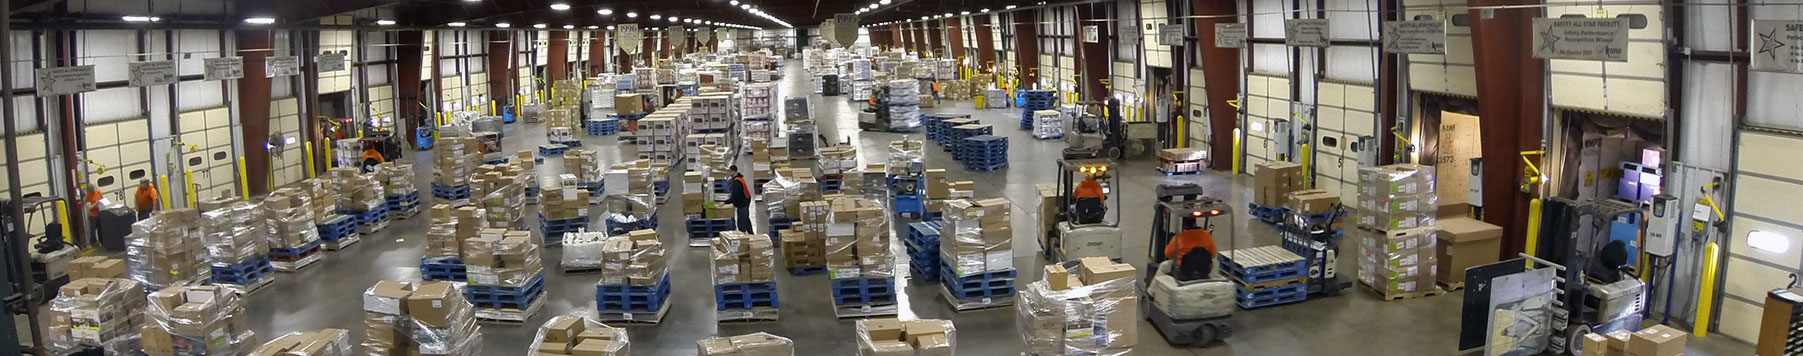 cross-docking-services